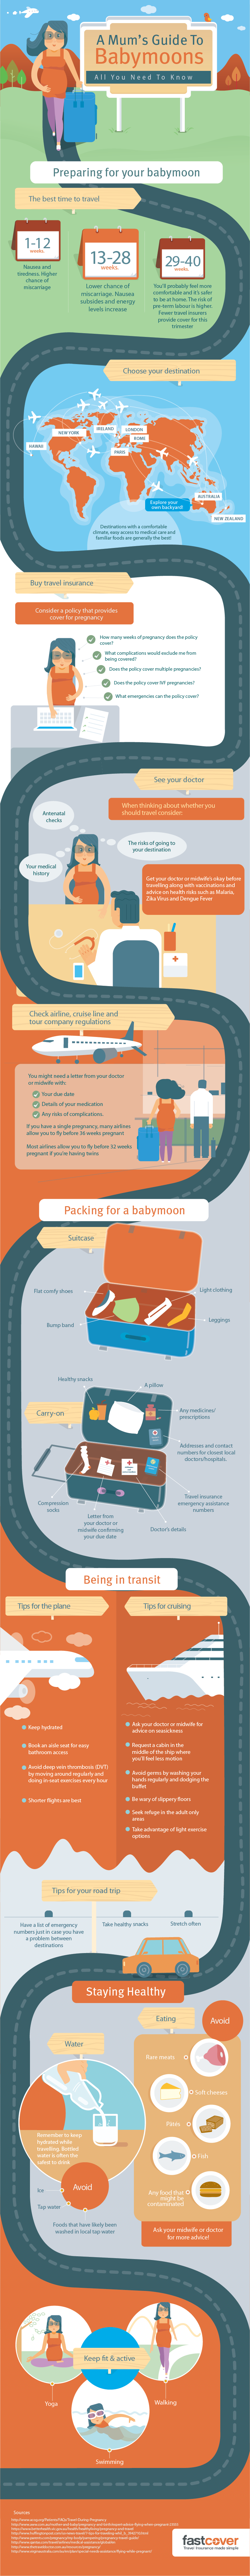 A Mum's Guide to Babymoons: All You Need to Know